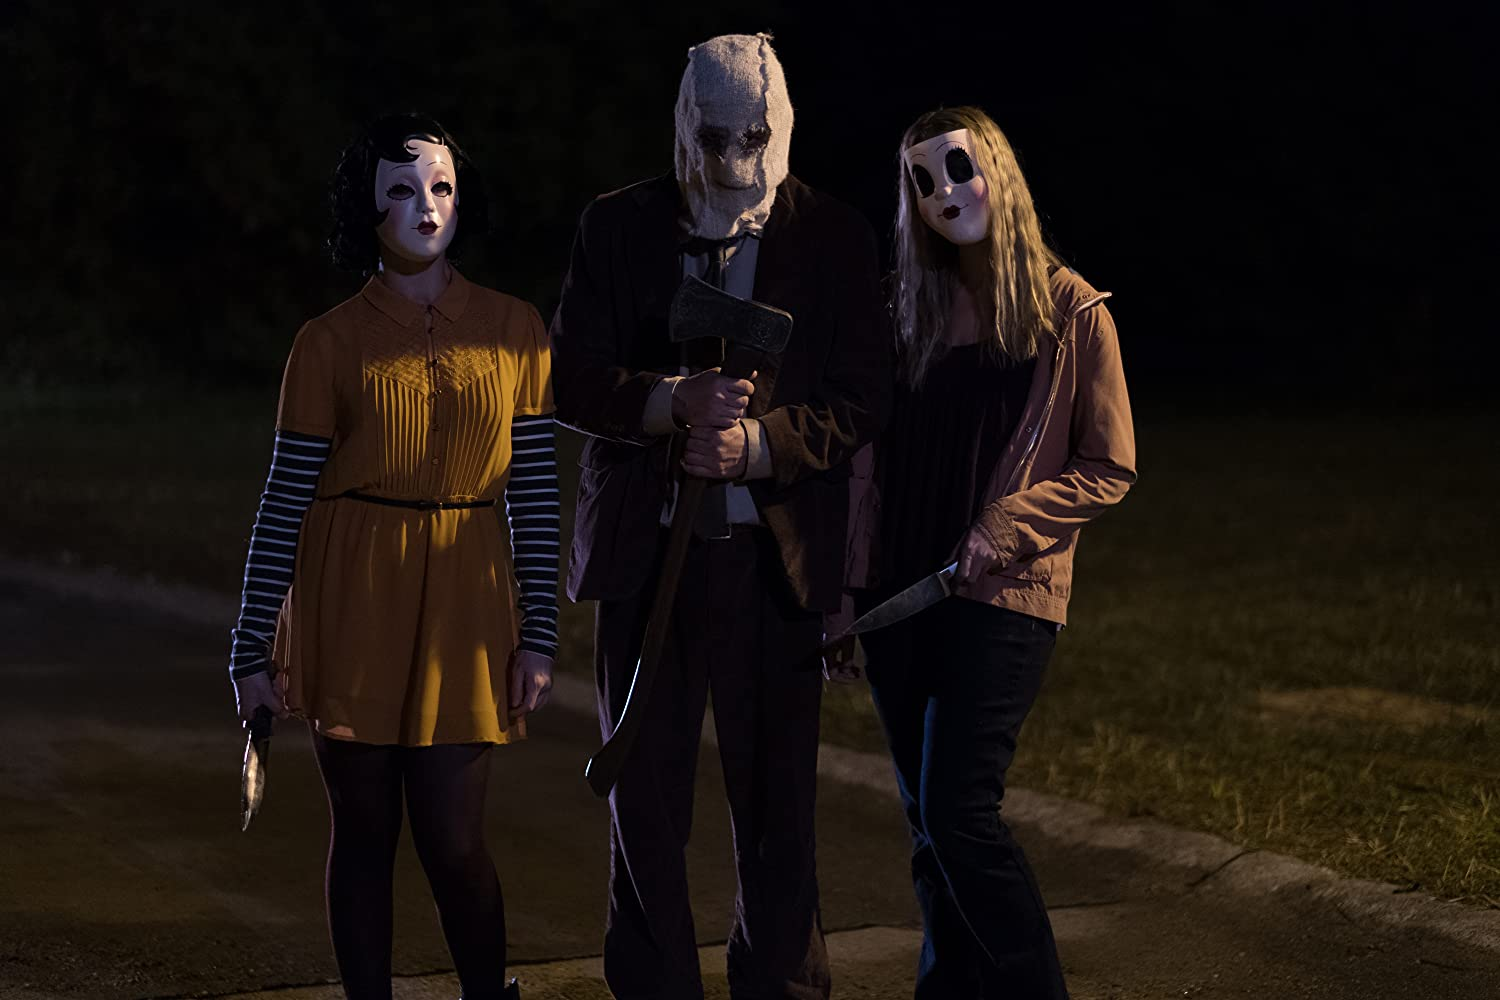 Damian Maffei, Lea Enslin, and Emma Bellomy in The Strangers: Prey at Night (2018)